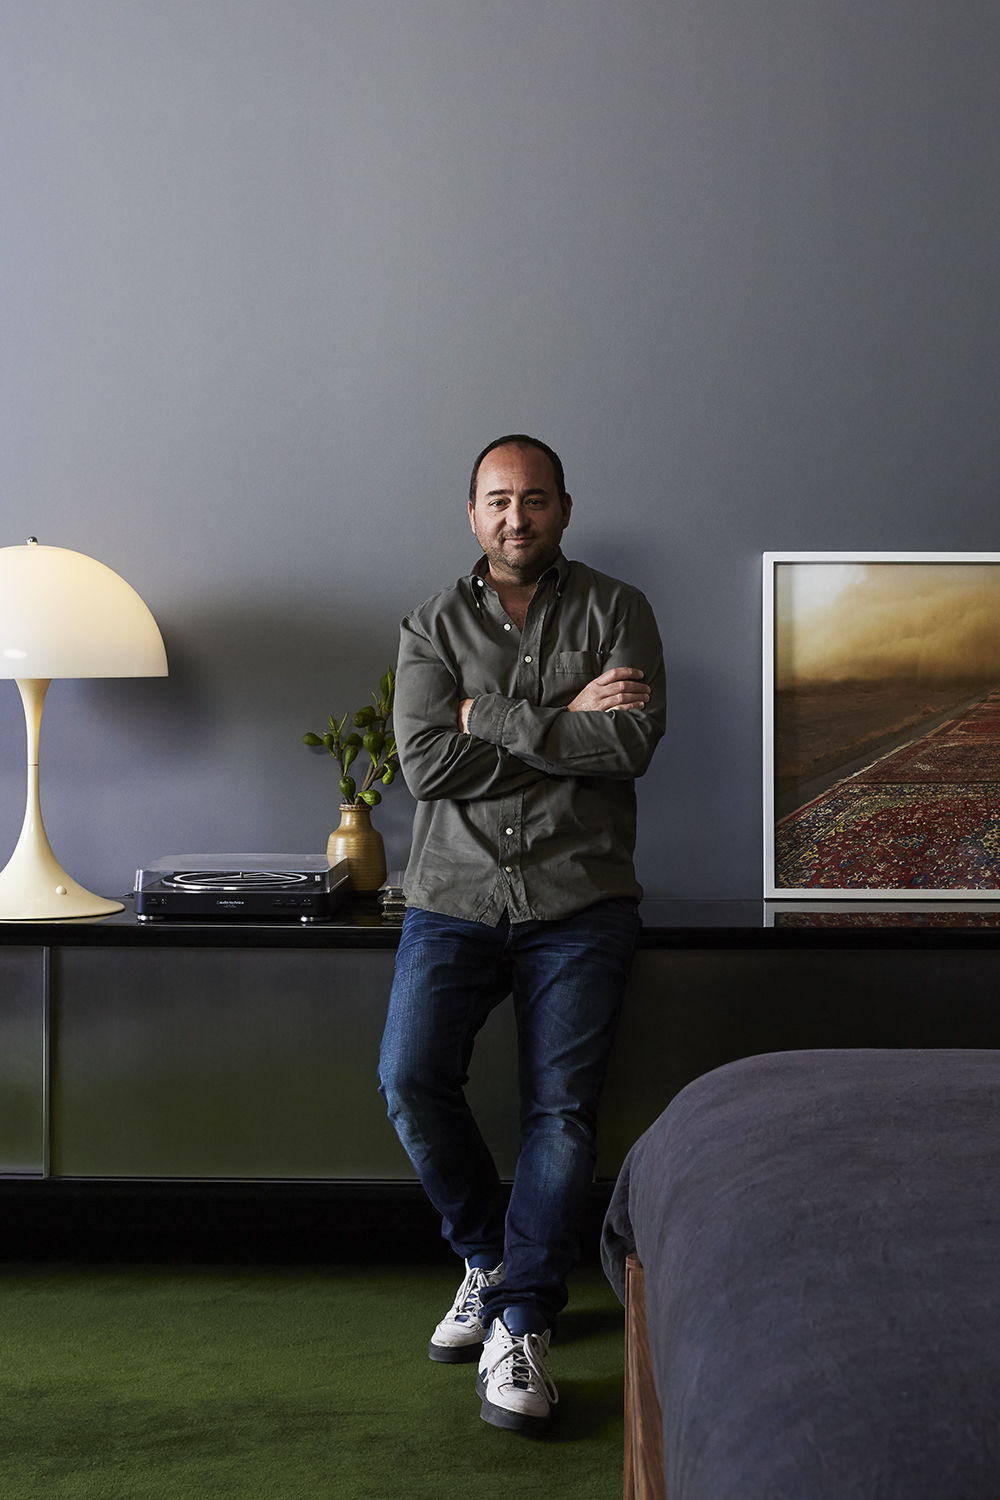 ustralia's love affair with Scandinavian design owes a lot to Great Dane and founder Anton Assaad, who in turn credits his passion for the design to his grandfather, a scientist who crafted his first piece of furniture at the age of twelve.